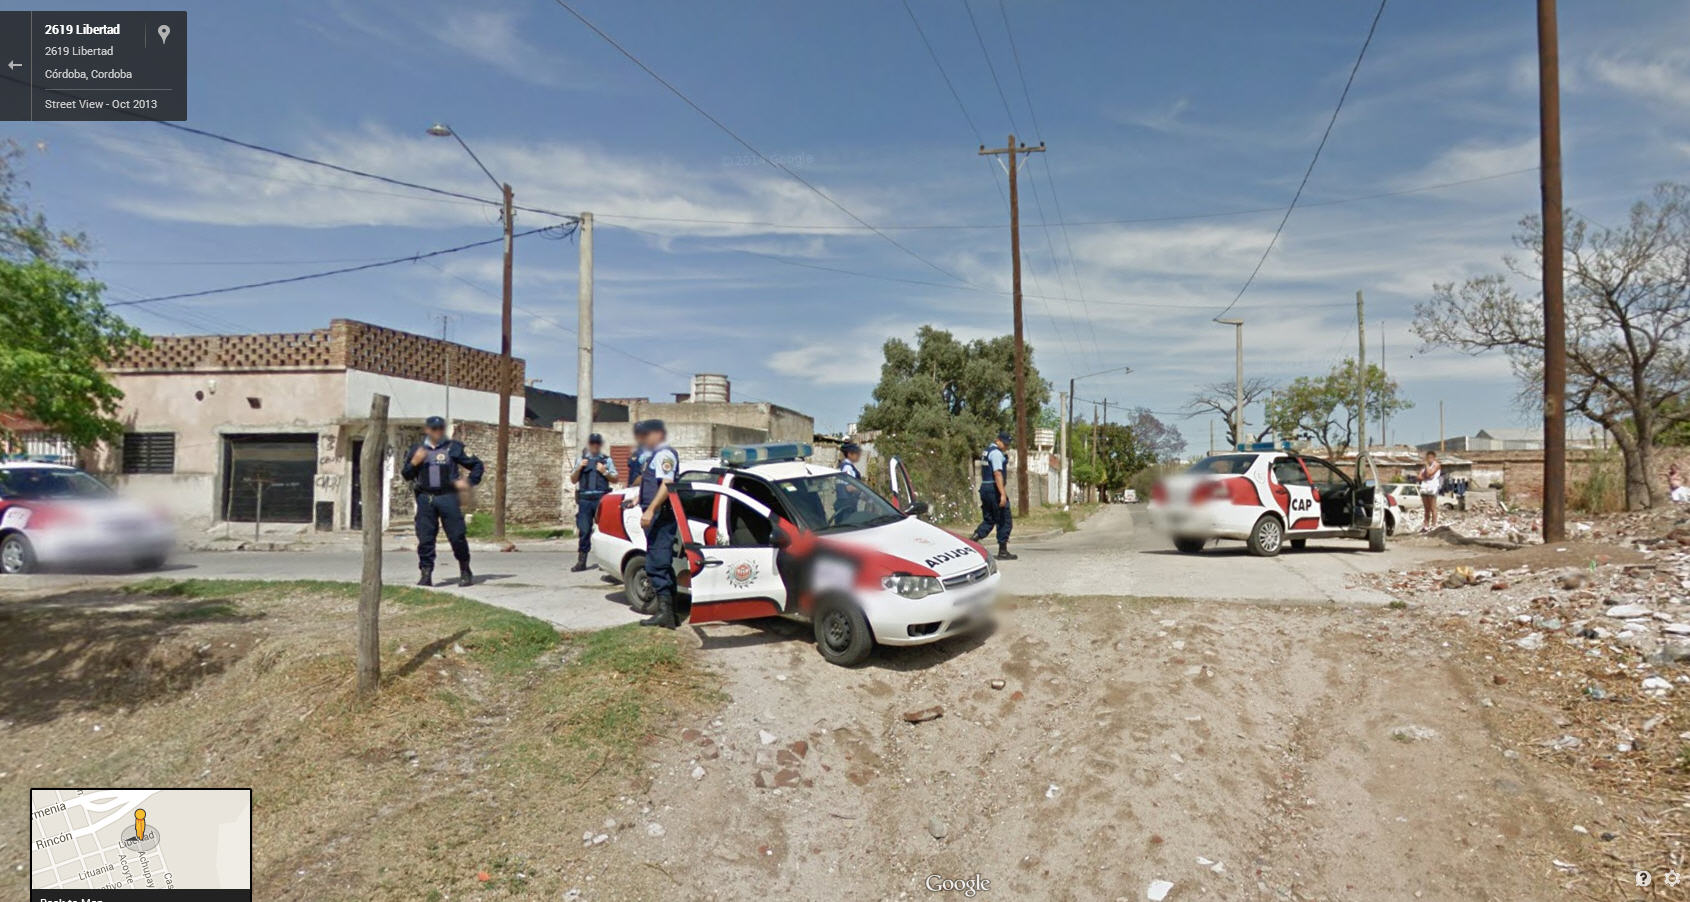 Police action in Argentina